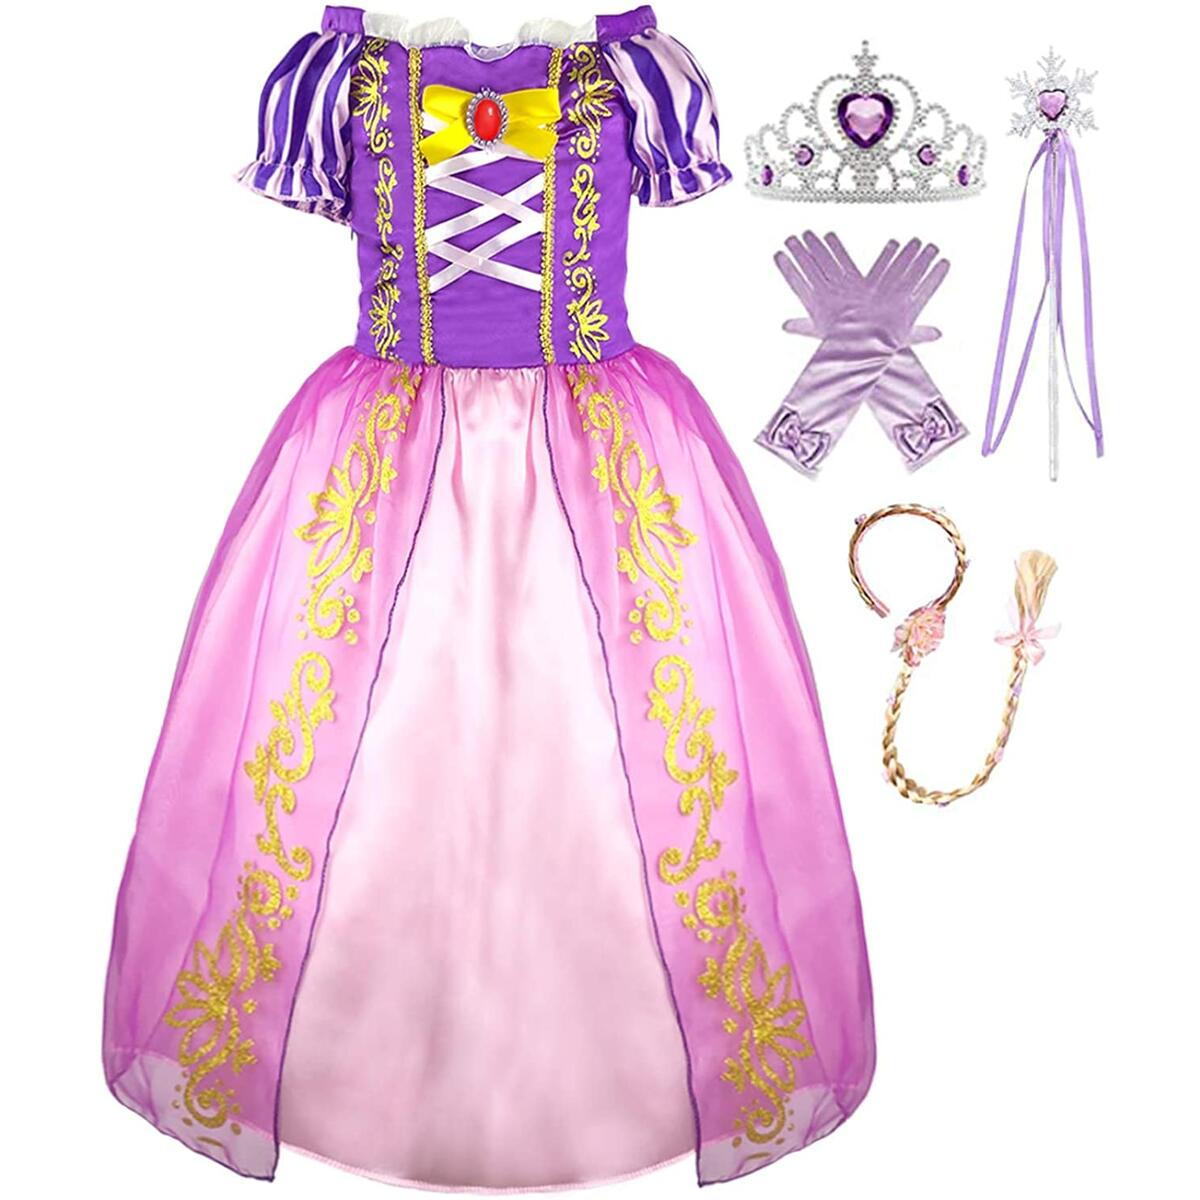 Girls Princess Dress Costume - Birthday Party Purple Puff Dress Up for Toddler